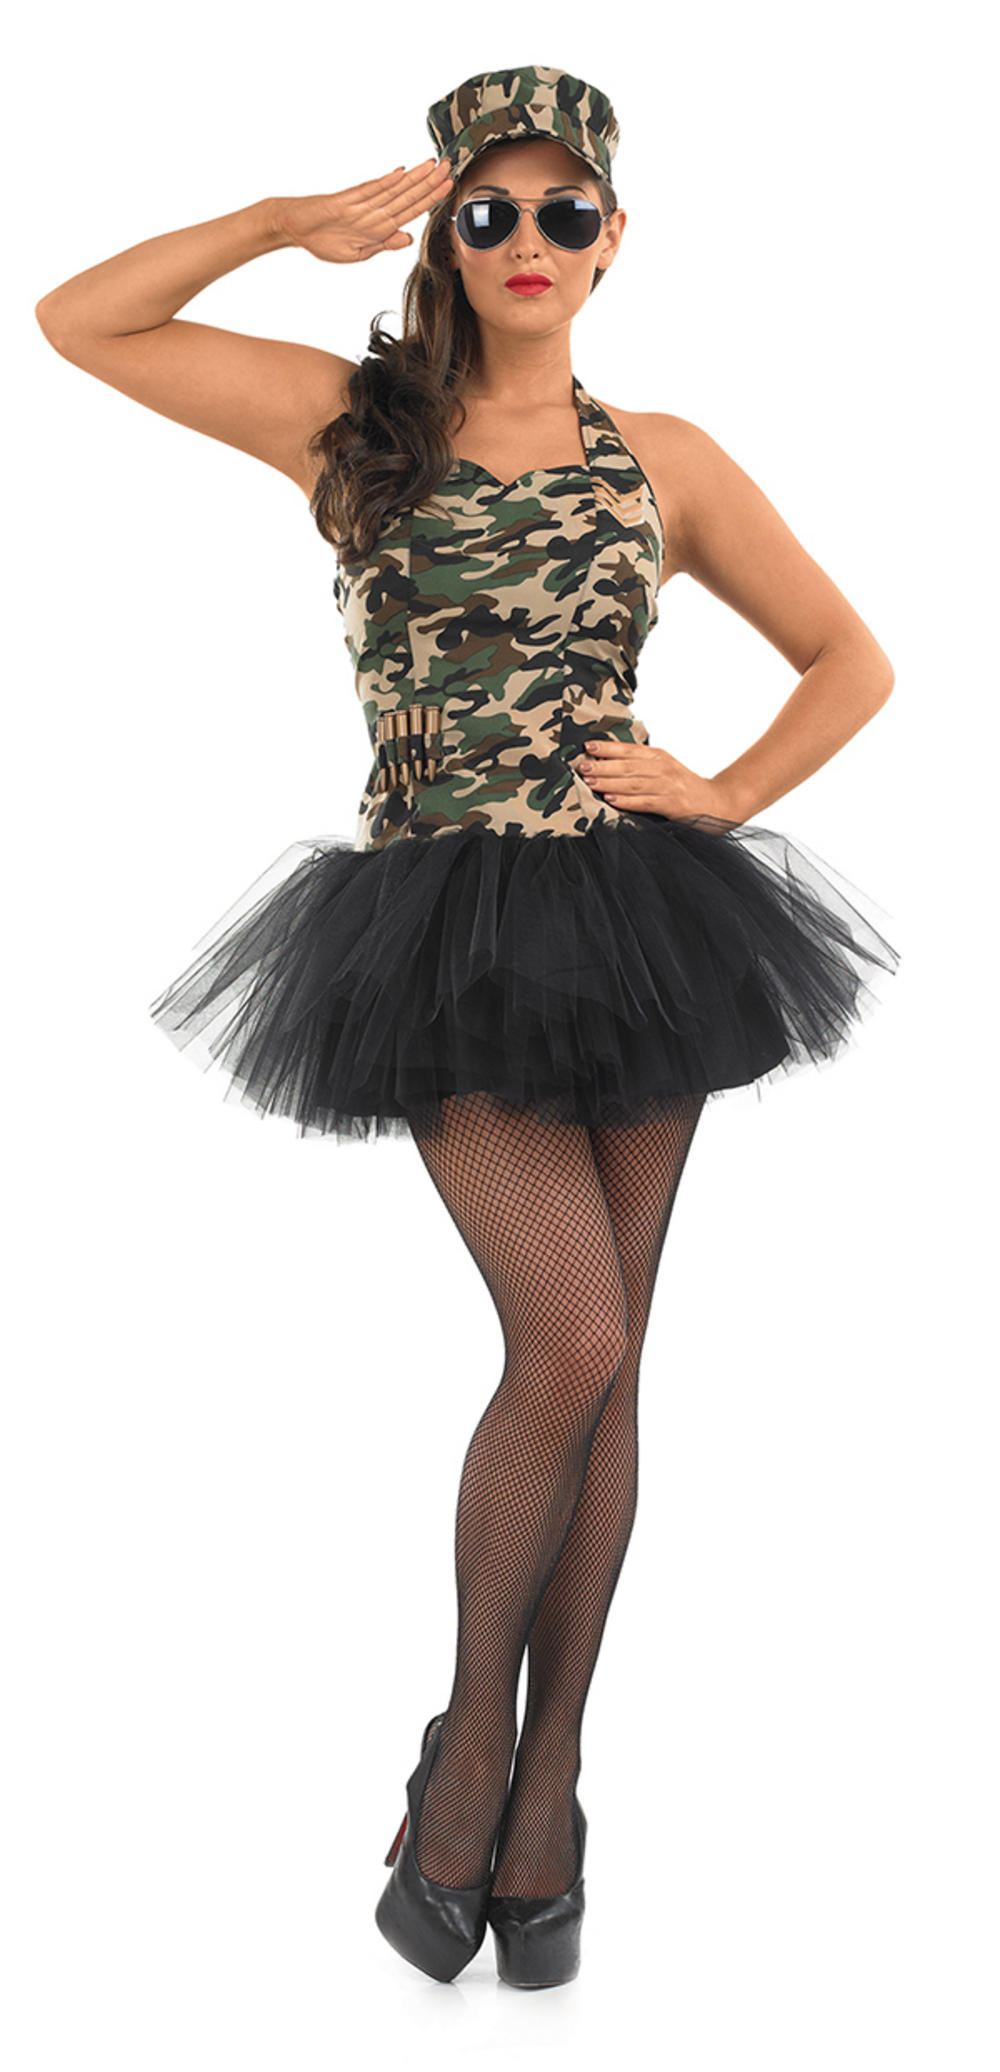 Commando Tutu Girl Ladies Costume